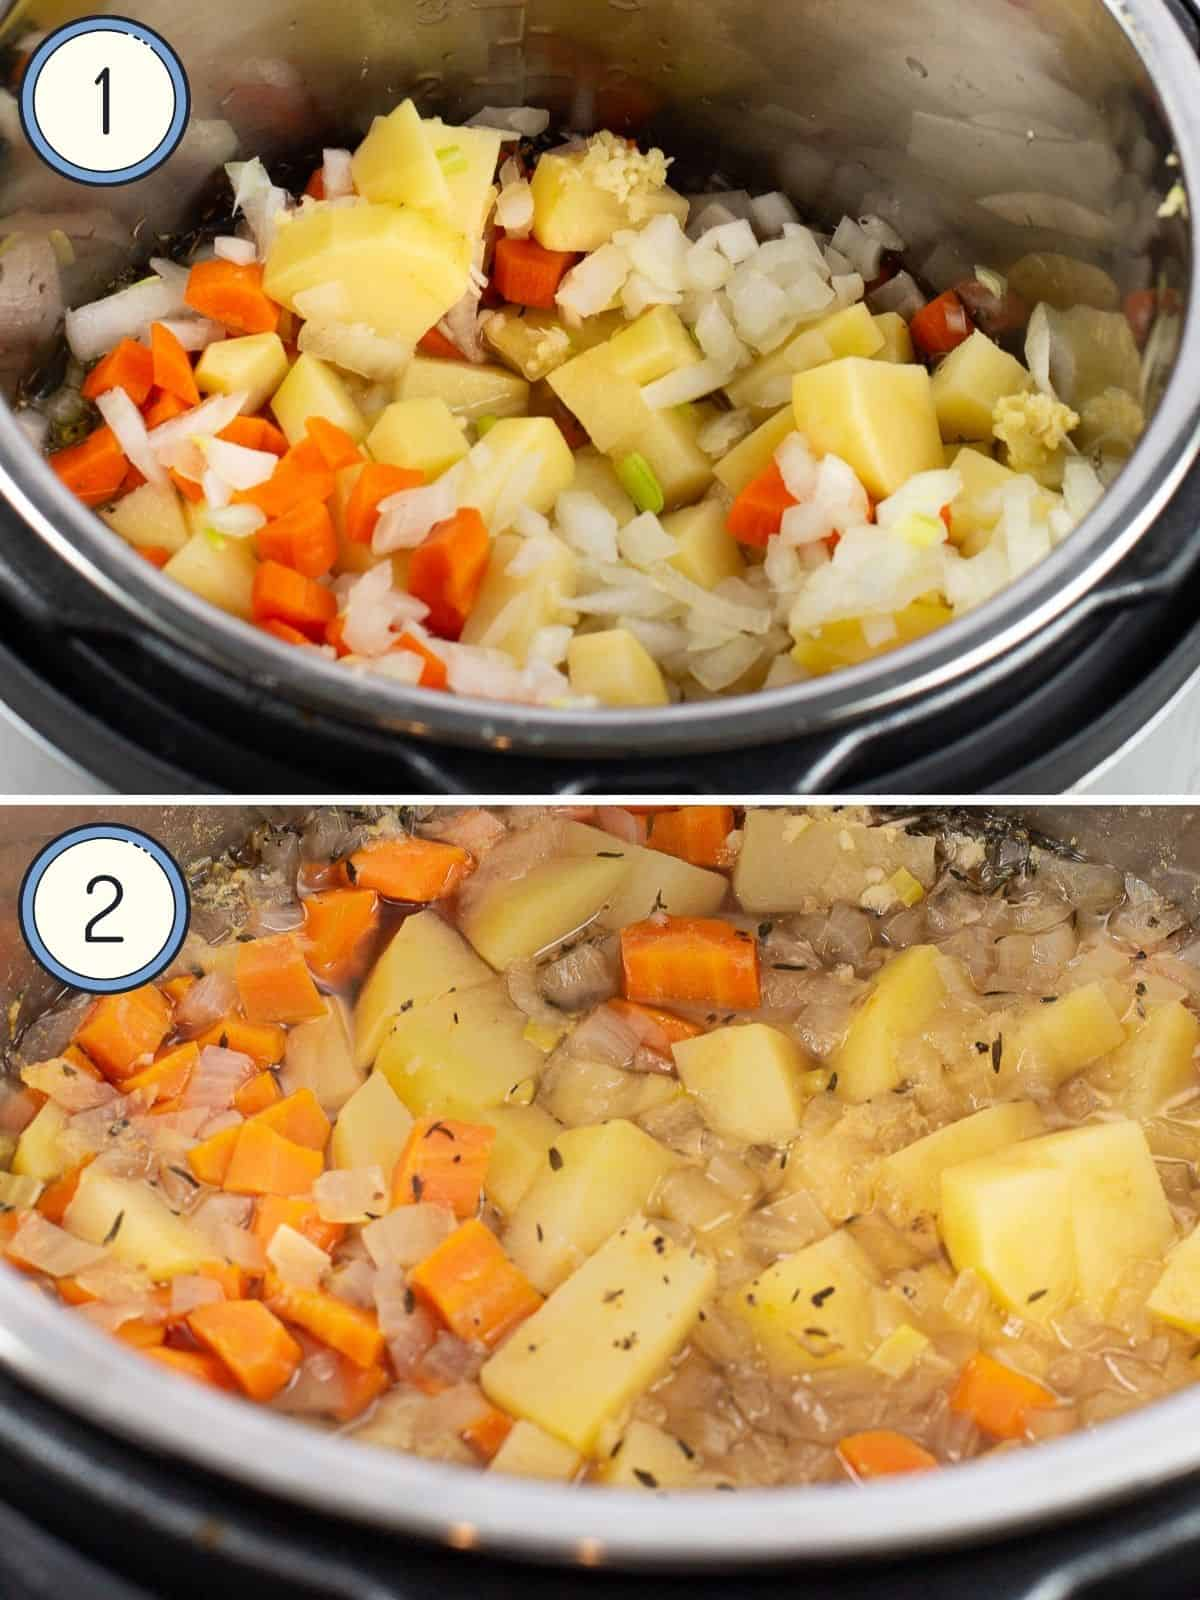 veggies for clam chowder in an instant pot cooked and uncooked